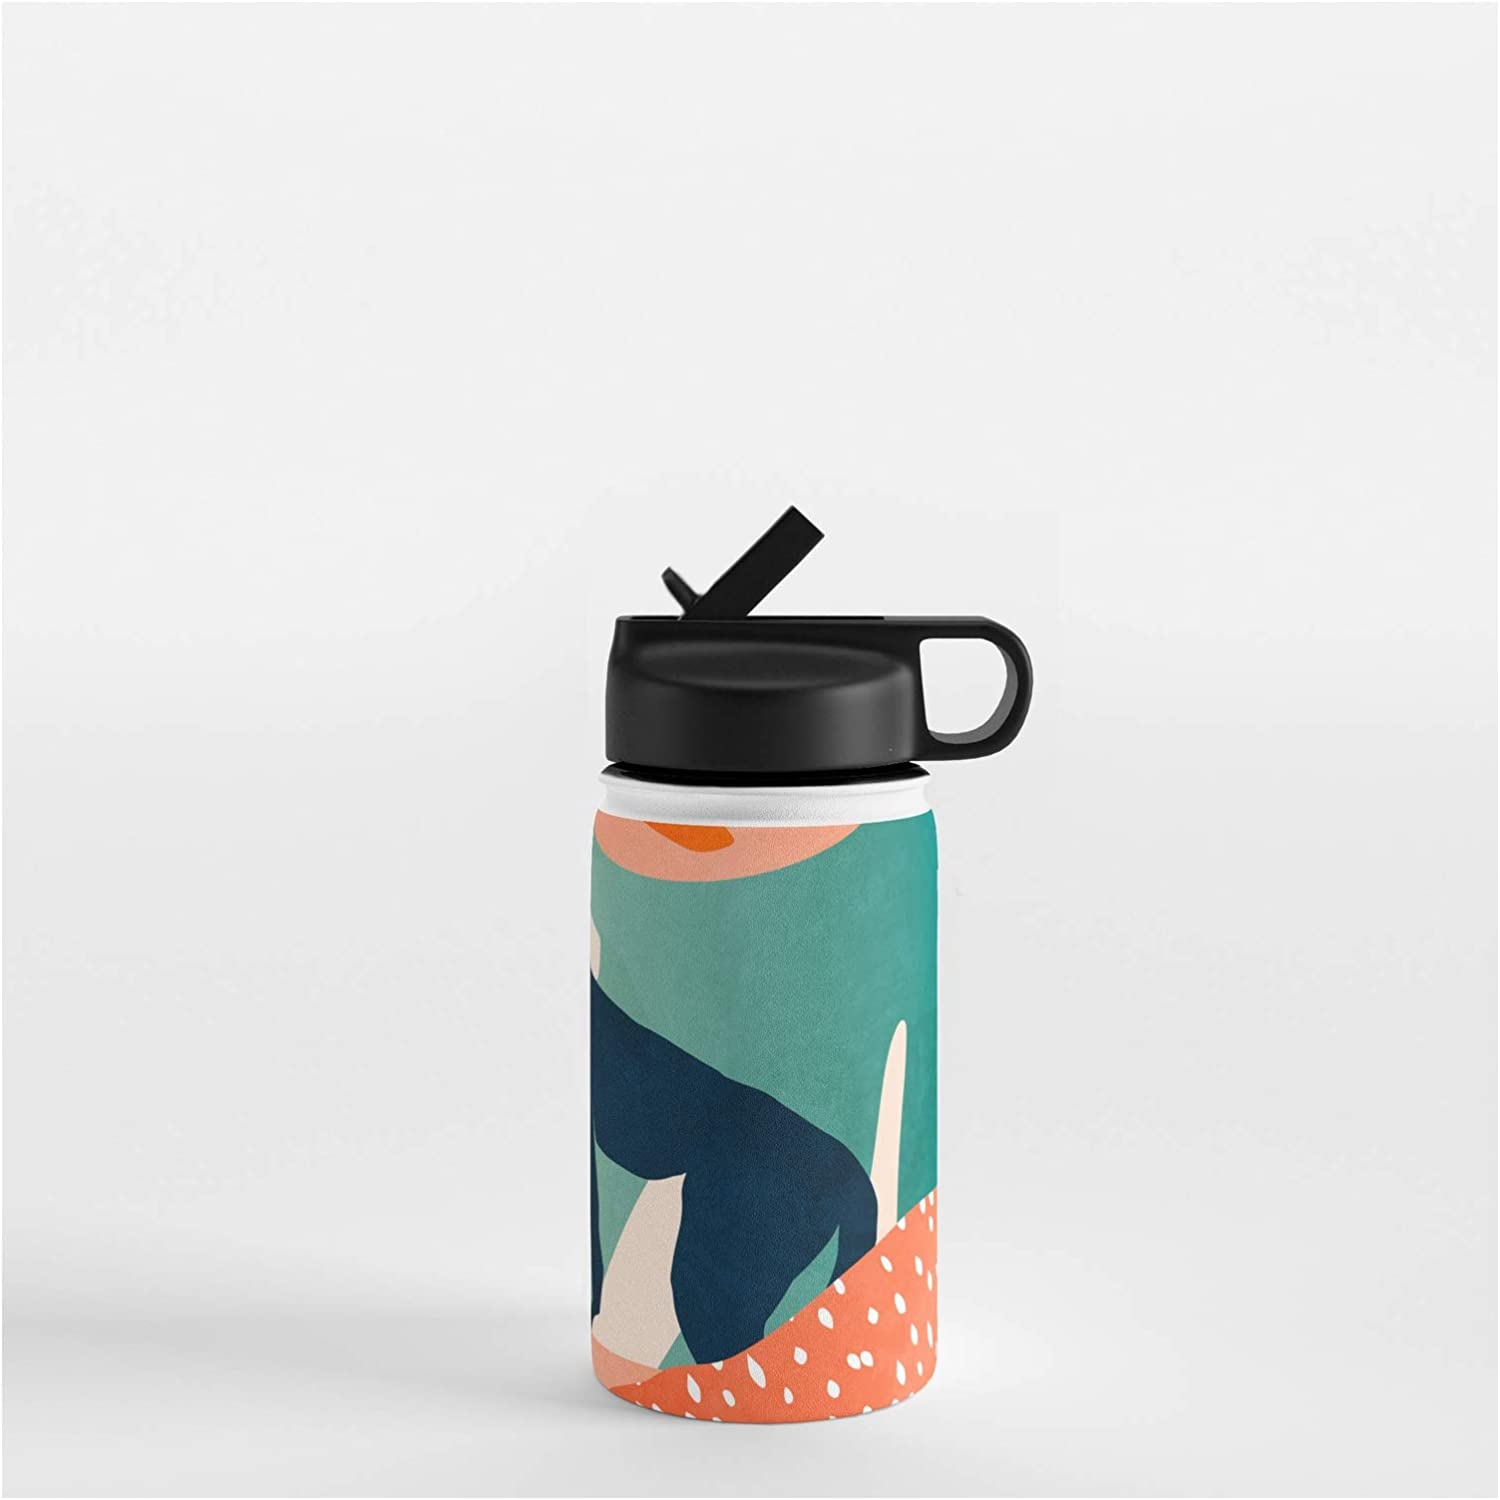 Society6 Tropical Cats by Max 50% OFF Ana Rut BRE on Art Water - Fine Bottle 35% OFF